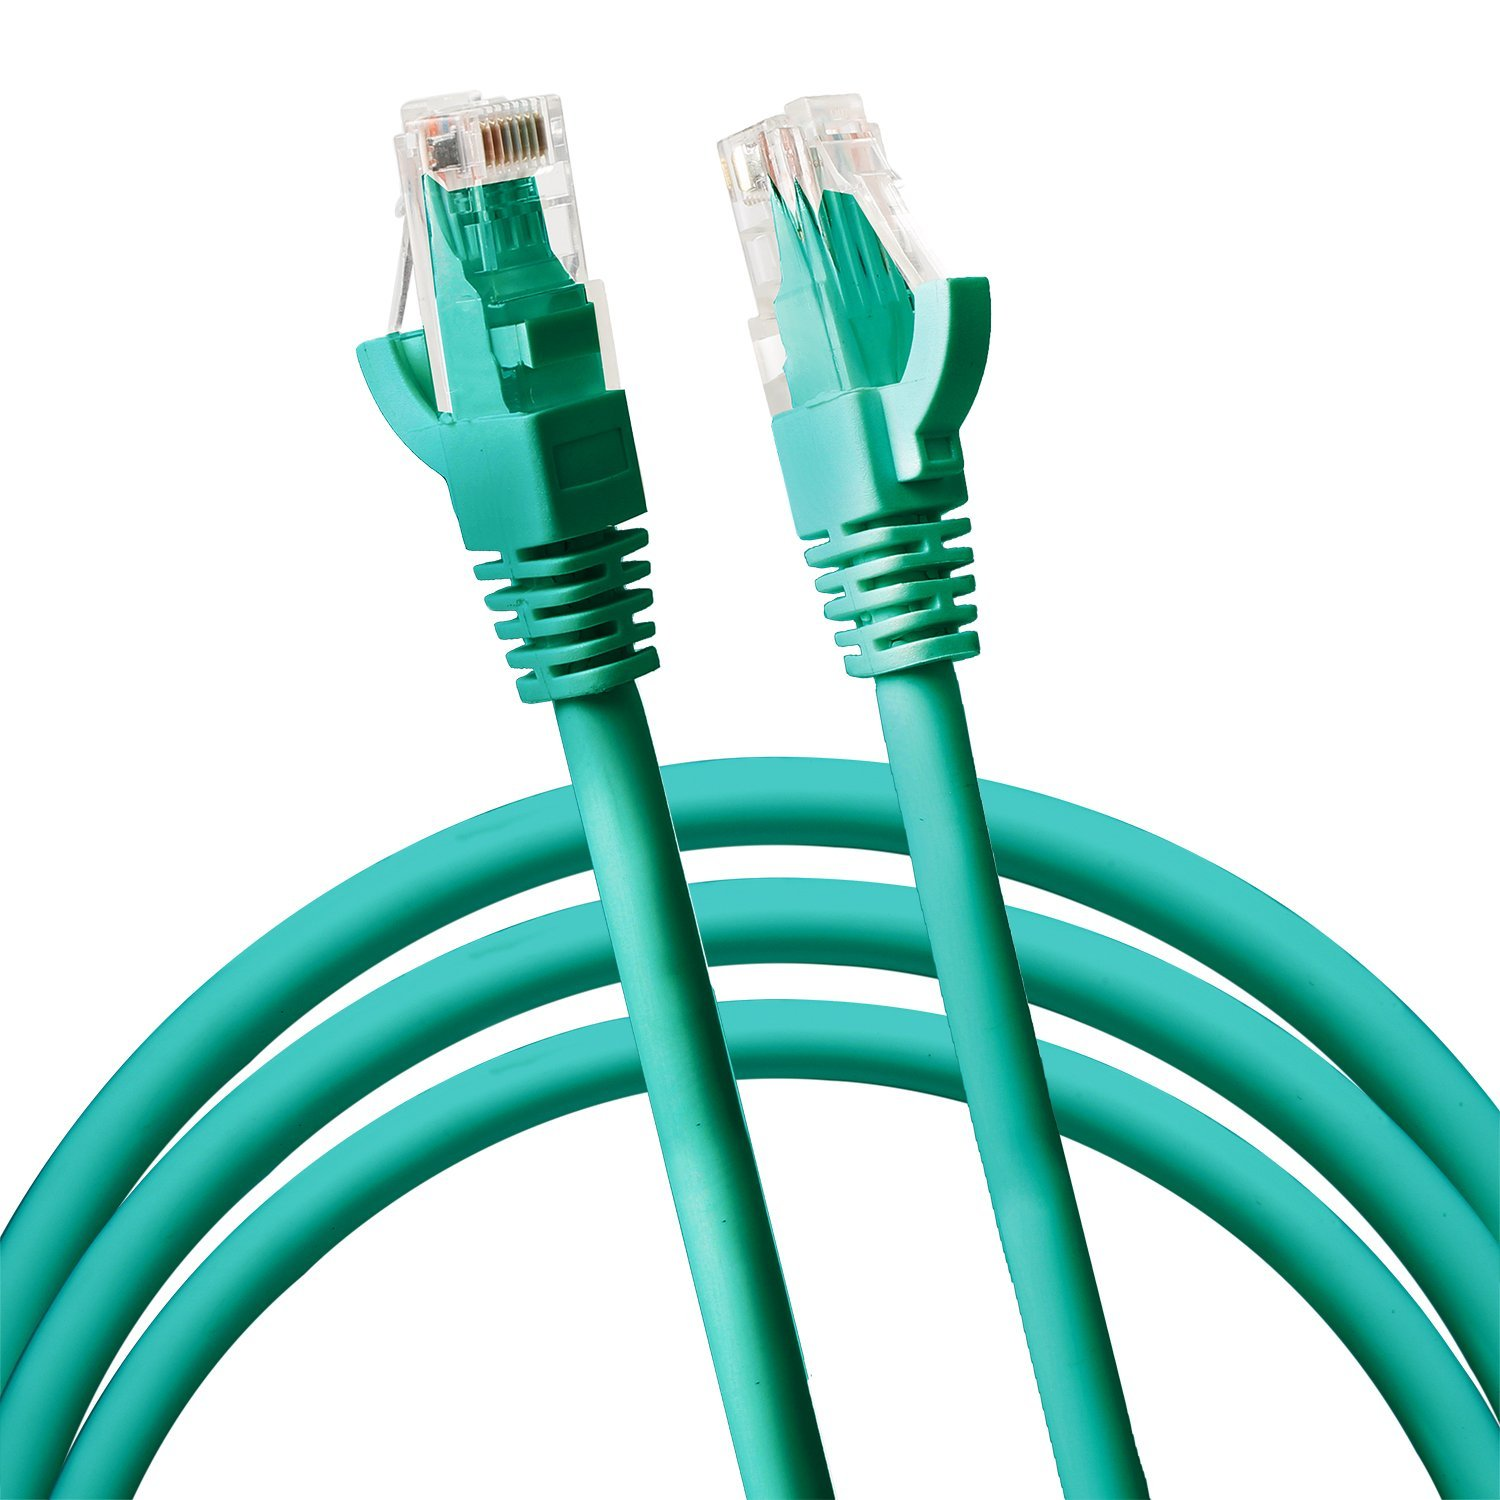 Jumbl Cat6 RJ45 Fast Ethernet Network Cable – 5 Feet Green - Connects Computer to Printer, Router, Switch Box or Local Area Network LAN Networking Cord, no Signal Loss